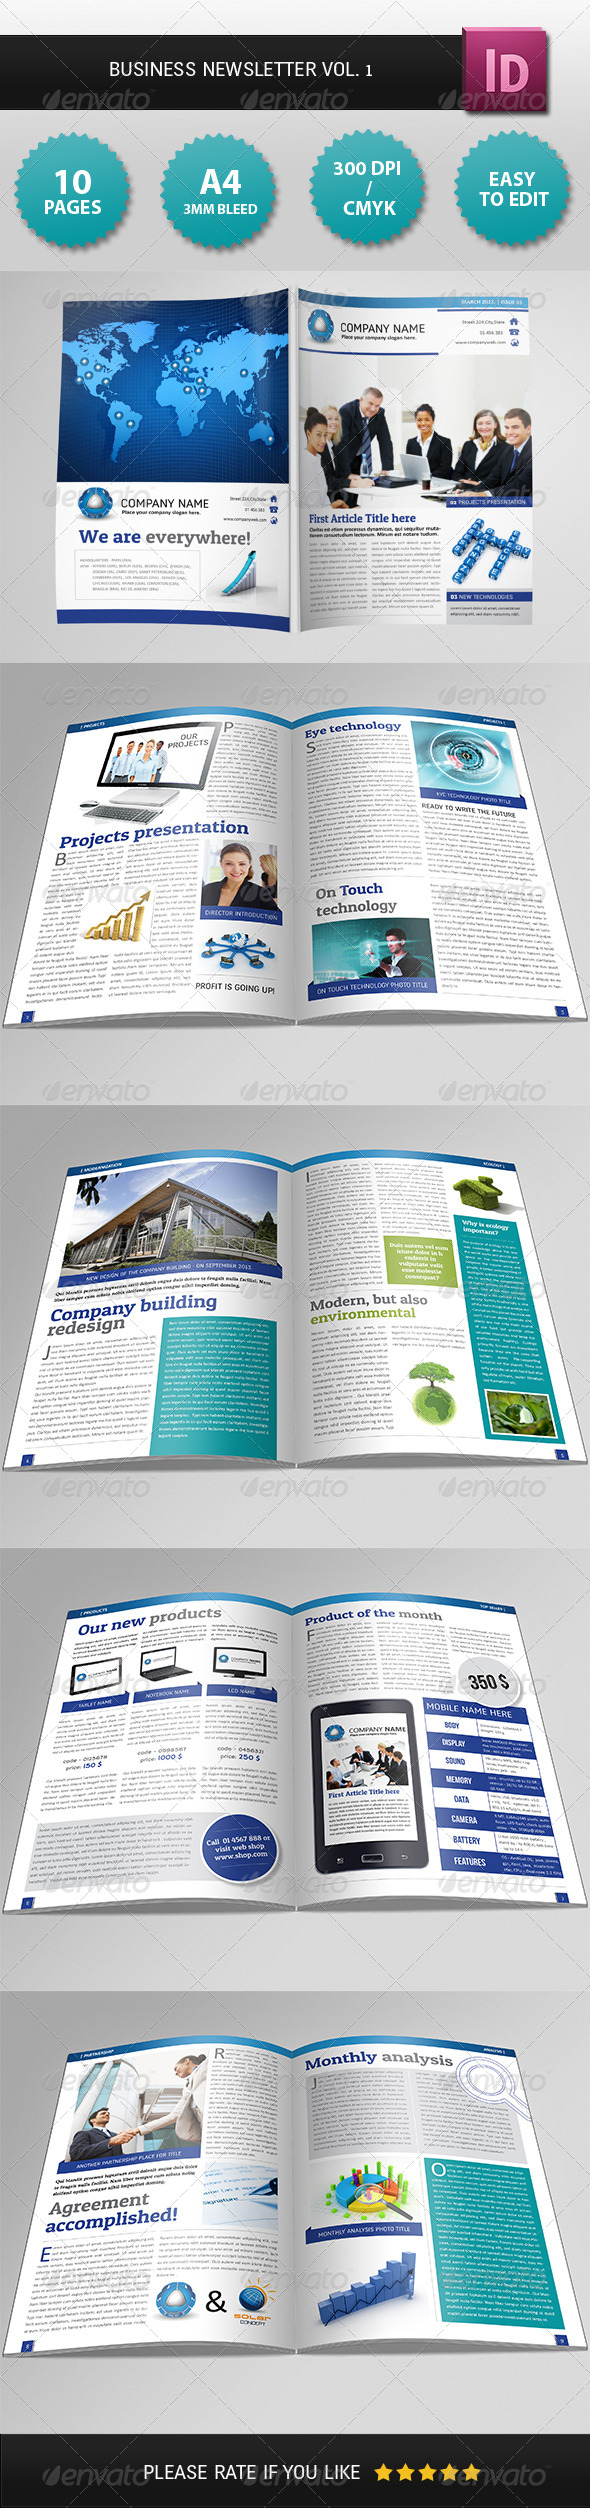 Business Newsletter Vol. 1 - Newsletters Print Templates